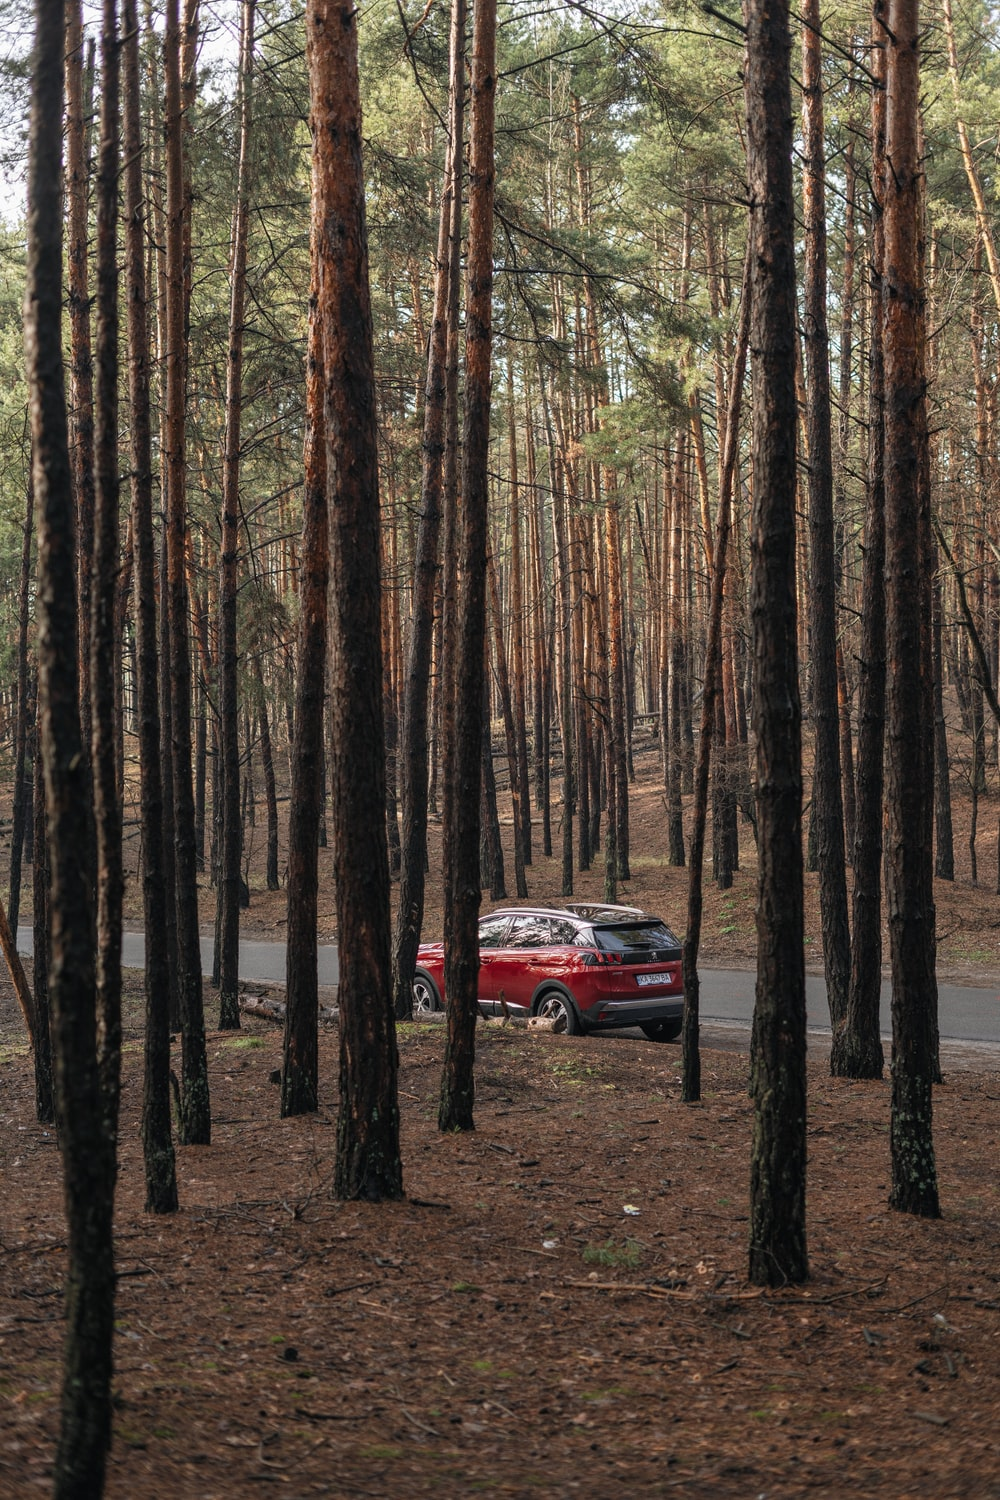 red car in the middle of the forest during daytime